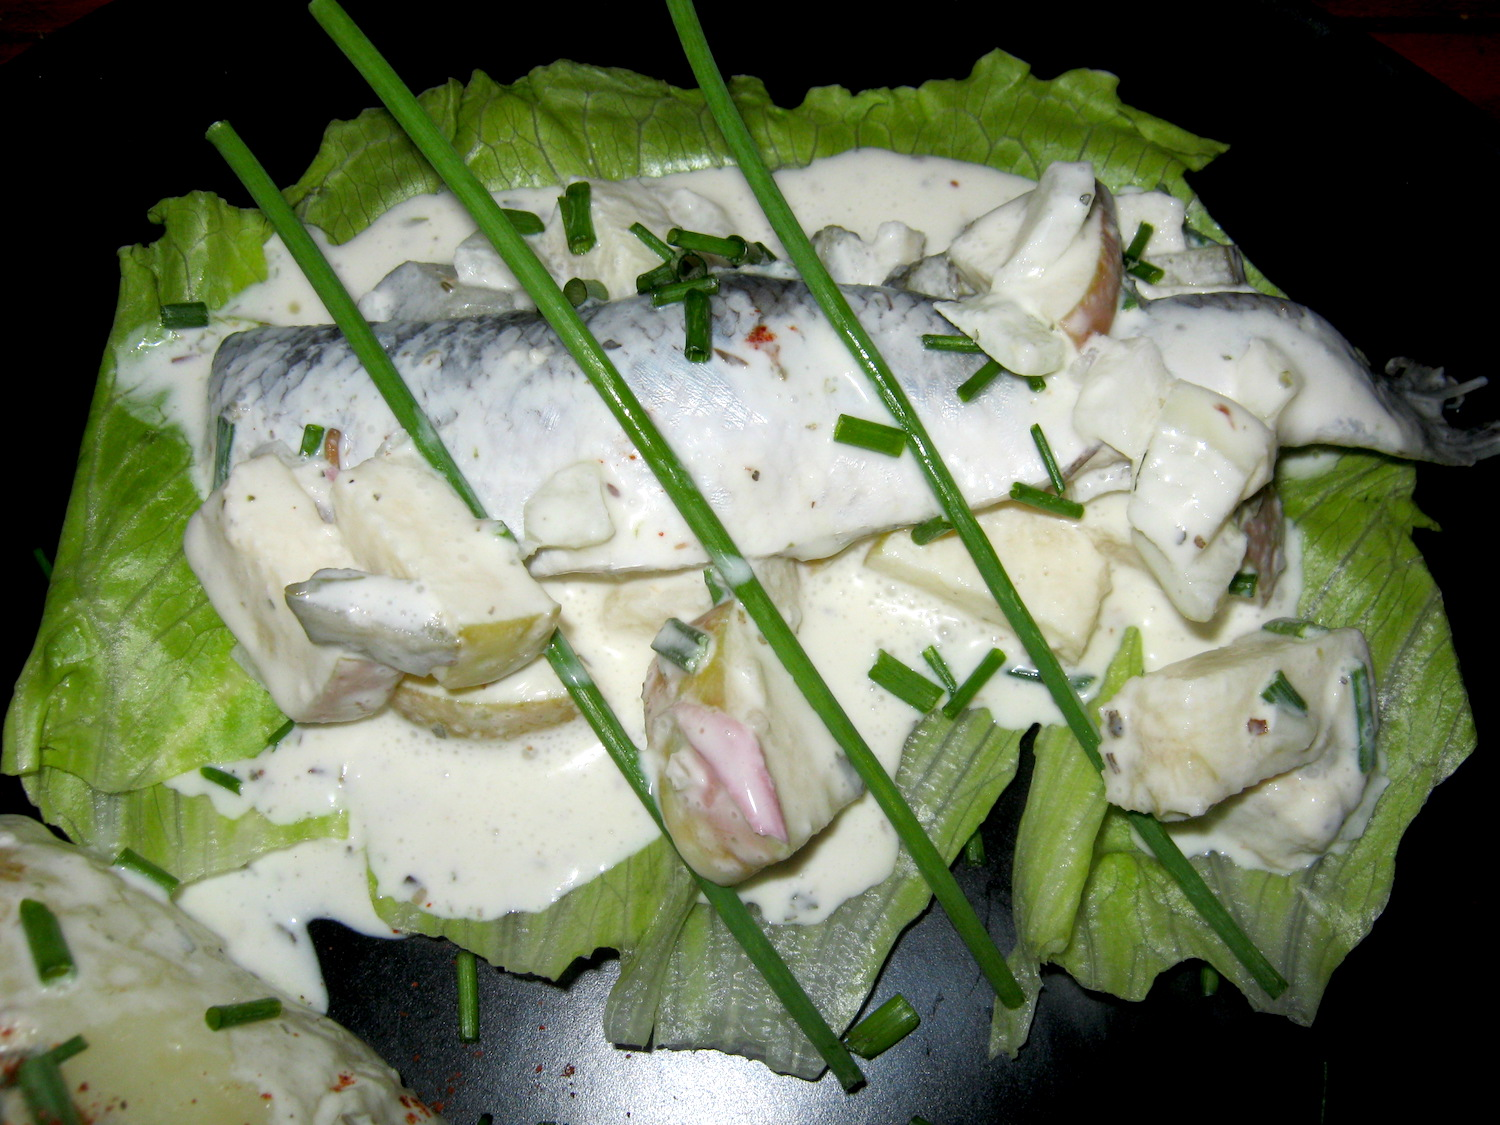 Herring fillet in sweet and sour marinade on a lettuce leaf